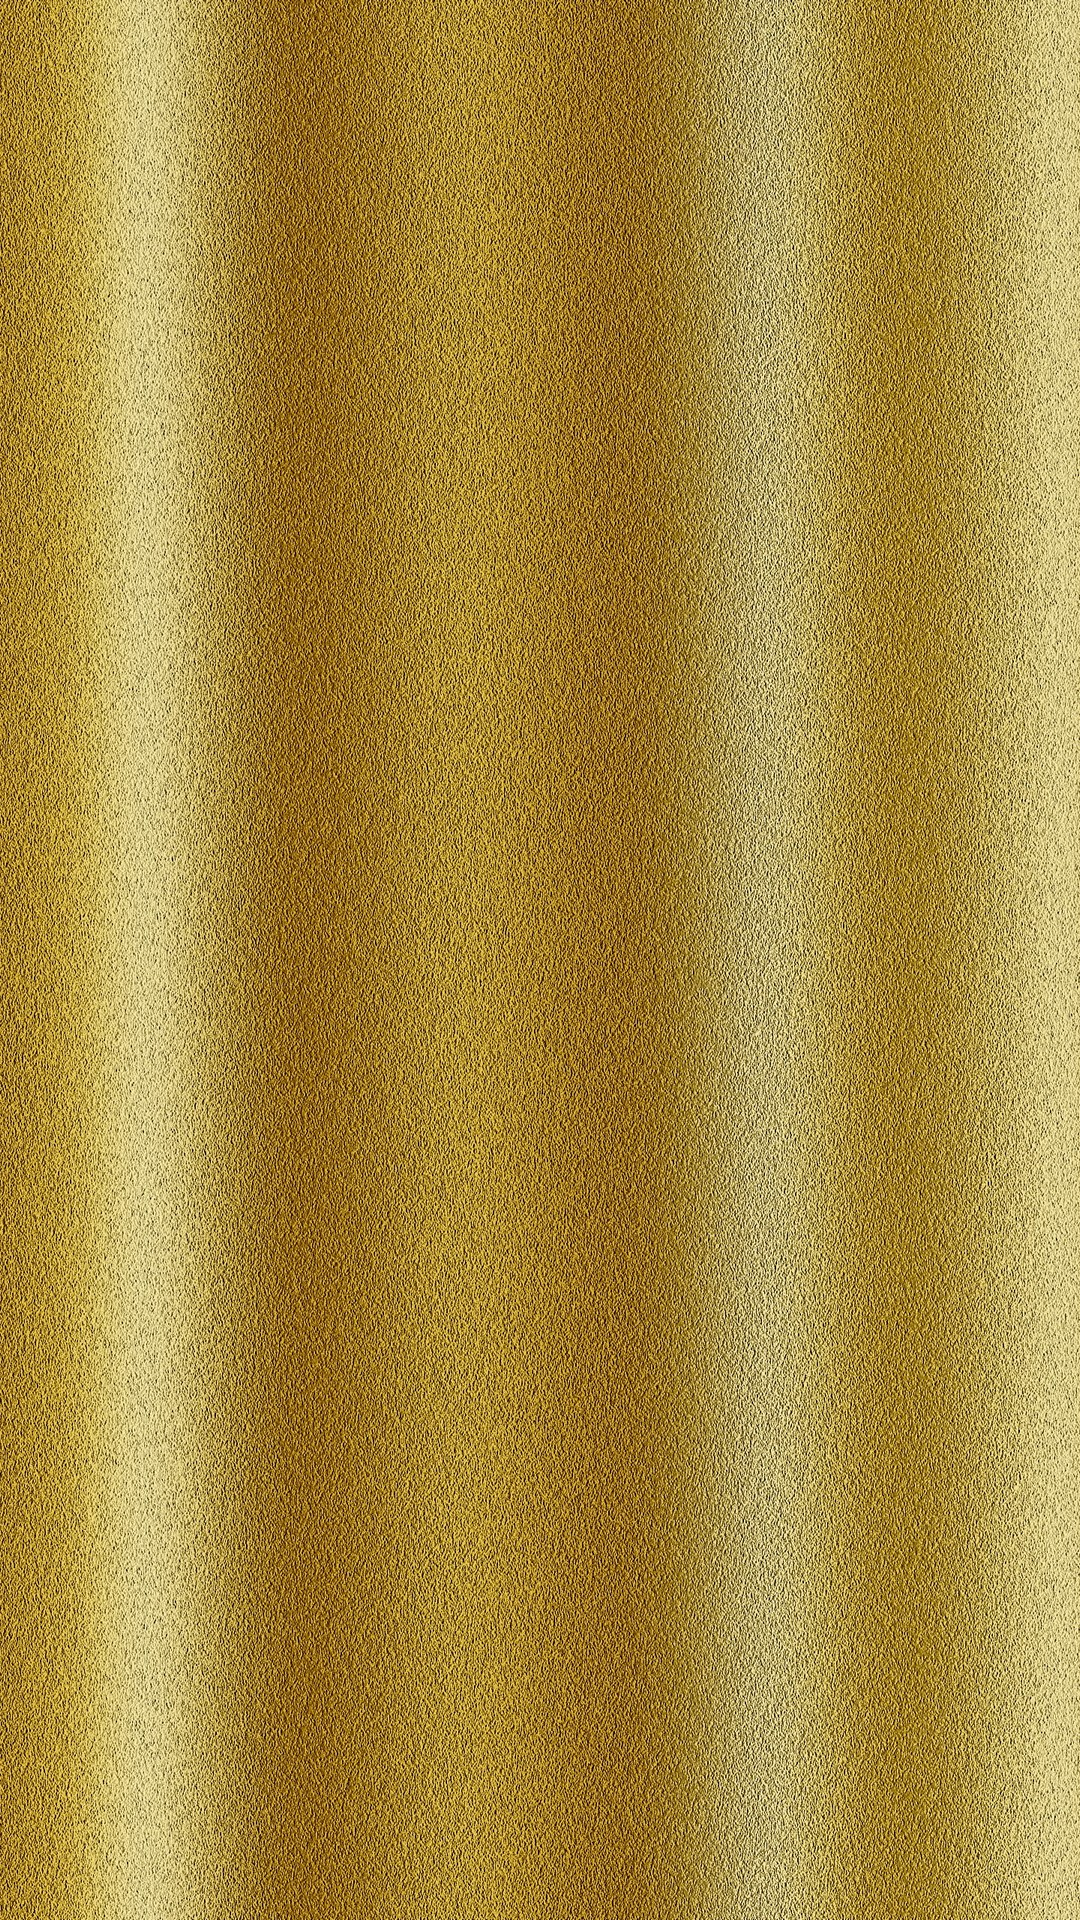 Metallic Gold Wallpaper Metallic Gold Android Wallpaper 2019 Android Wallpapers